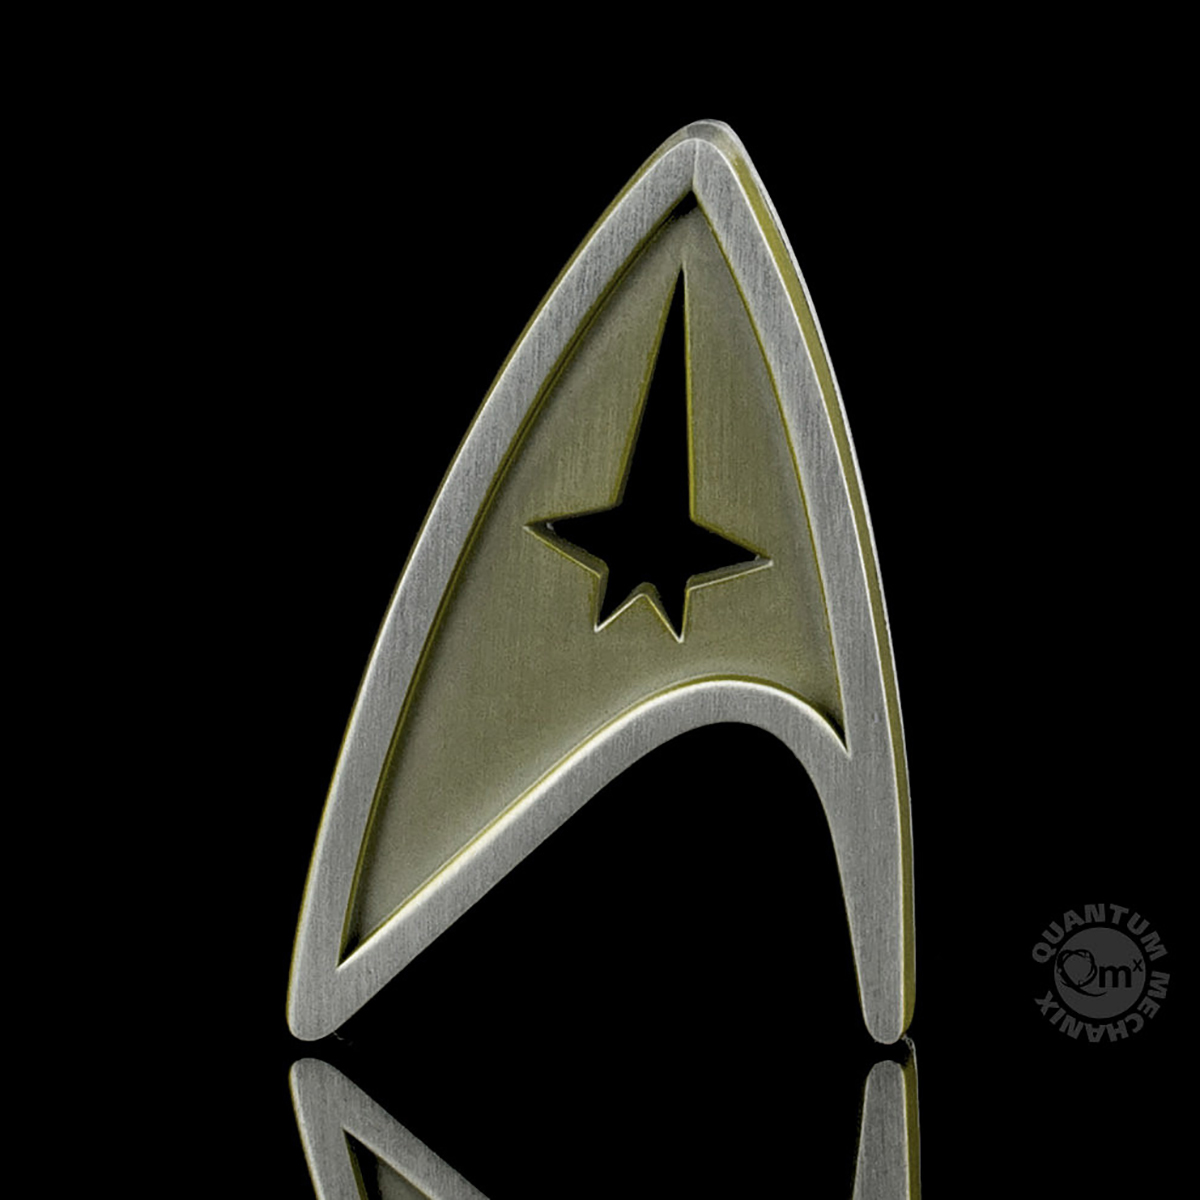 Star Trek Beyond Command Badge